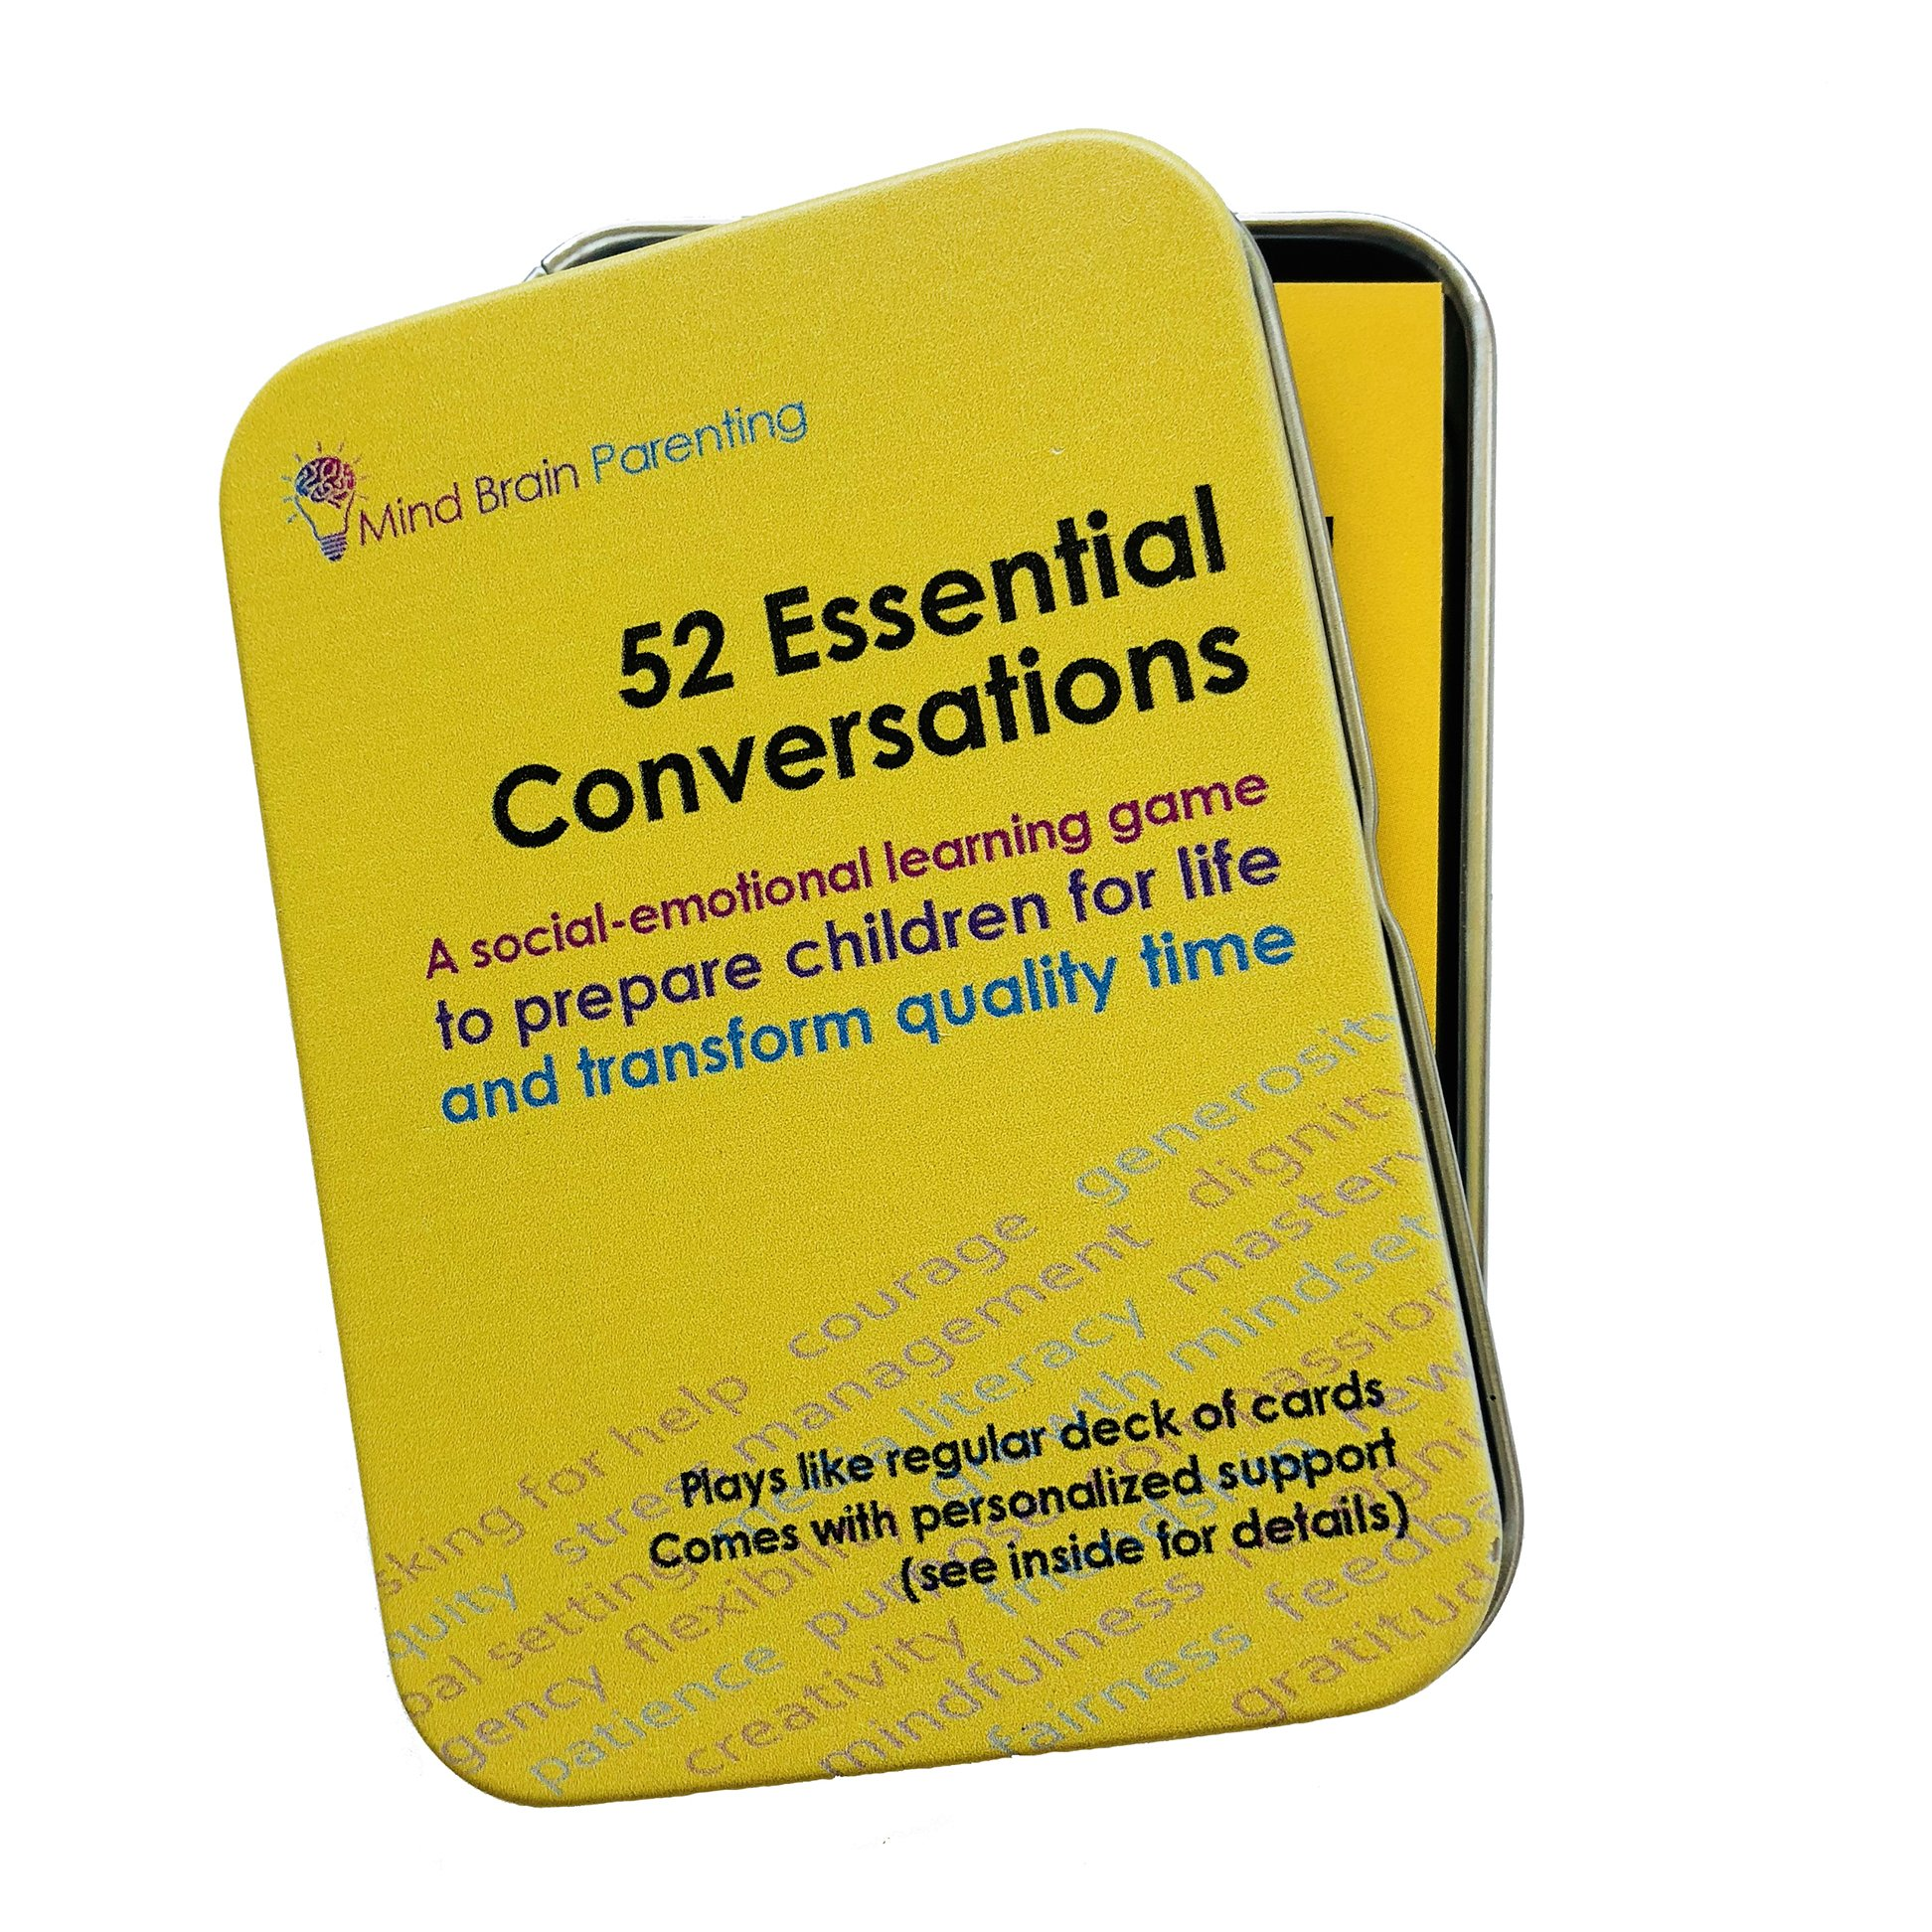 52 Essential Conversations: The Life Skills Card Game for Age 5 to Adults - Builds Social Emotional, Critical Thinking, Growth Mindset & Vocabulary Skills - Created by Harvard Educators